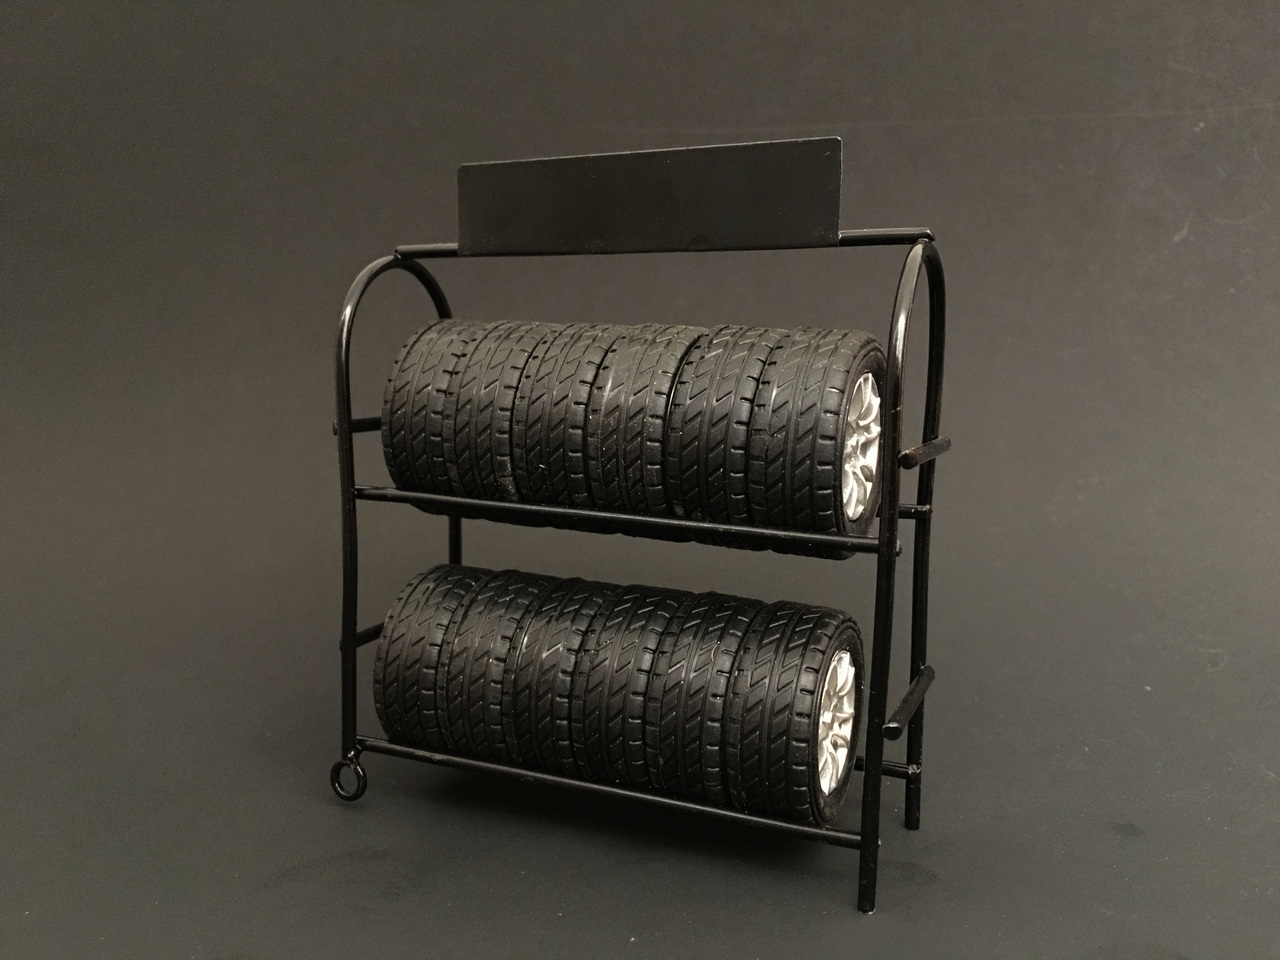 Metal Tire Rack with Tires and Rims for 1/18 Scale Models by American Diorama